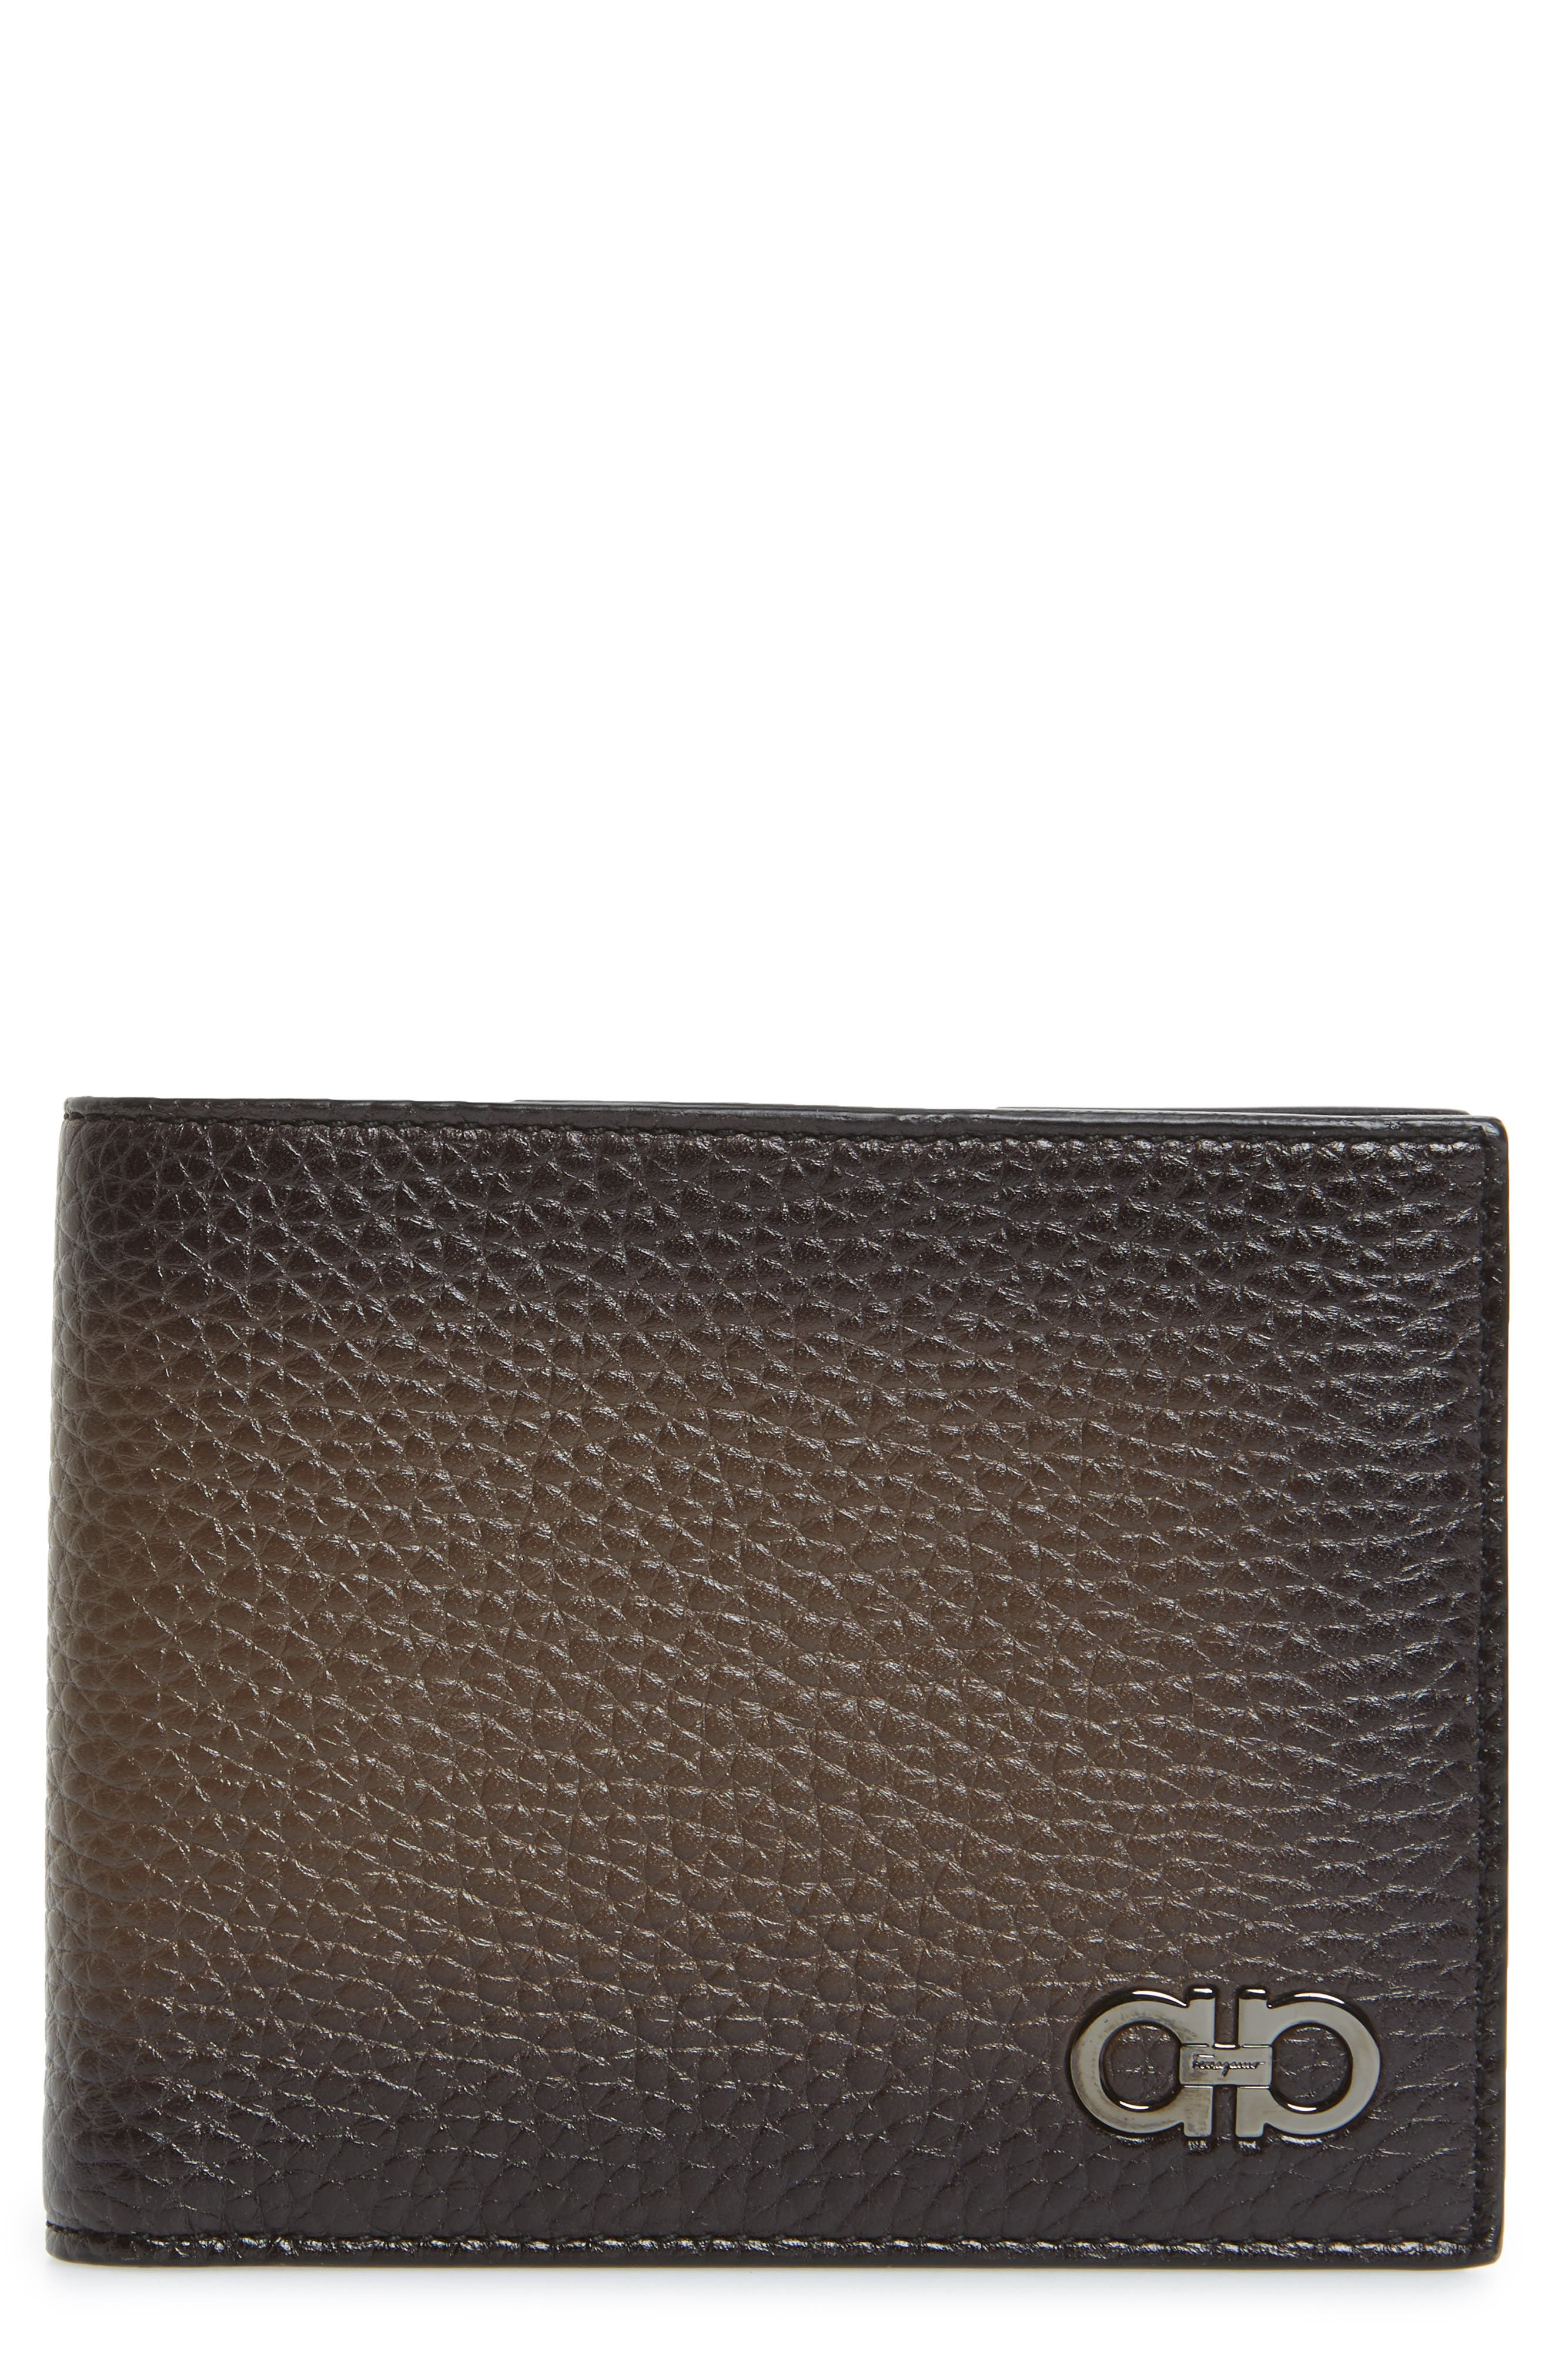 Glow Leather Wallet,                         Main,                         color,